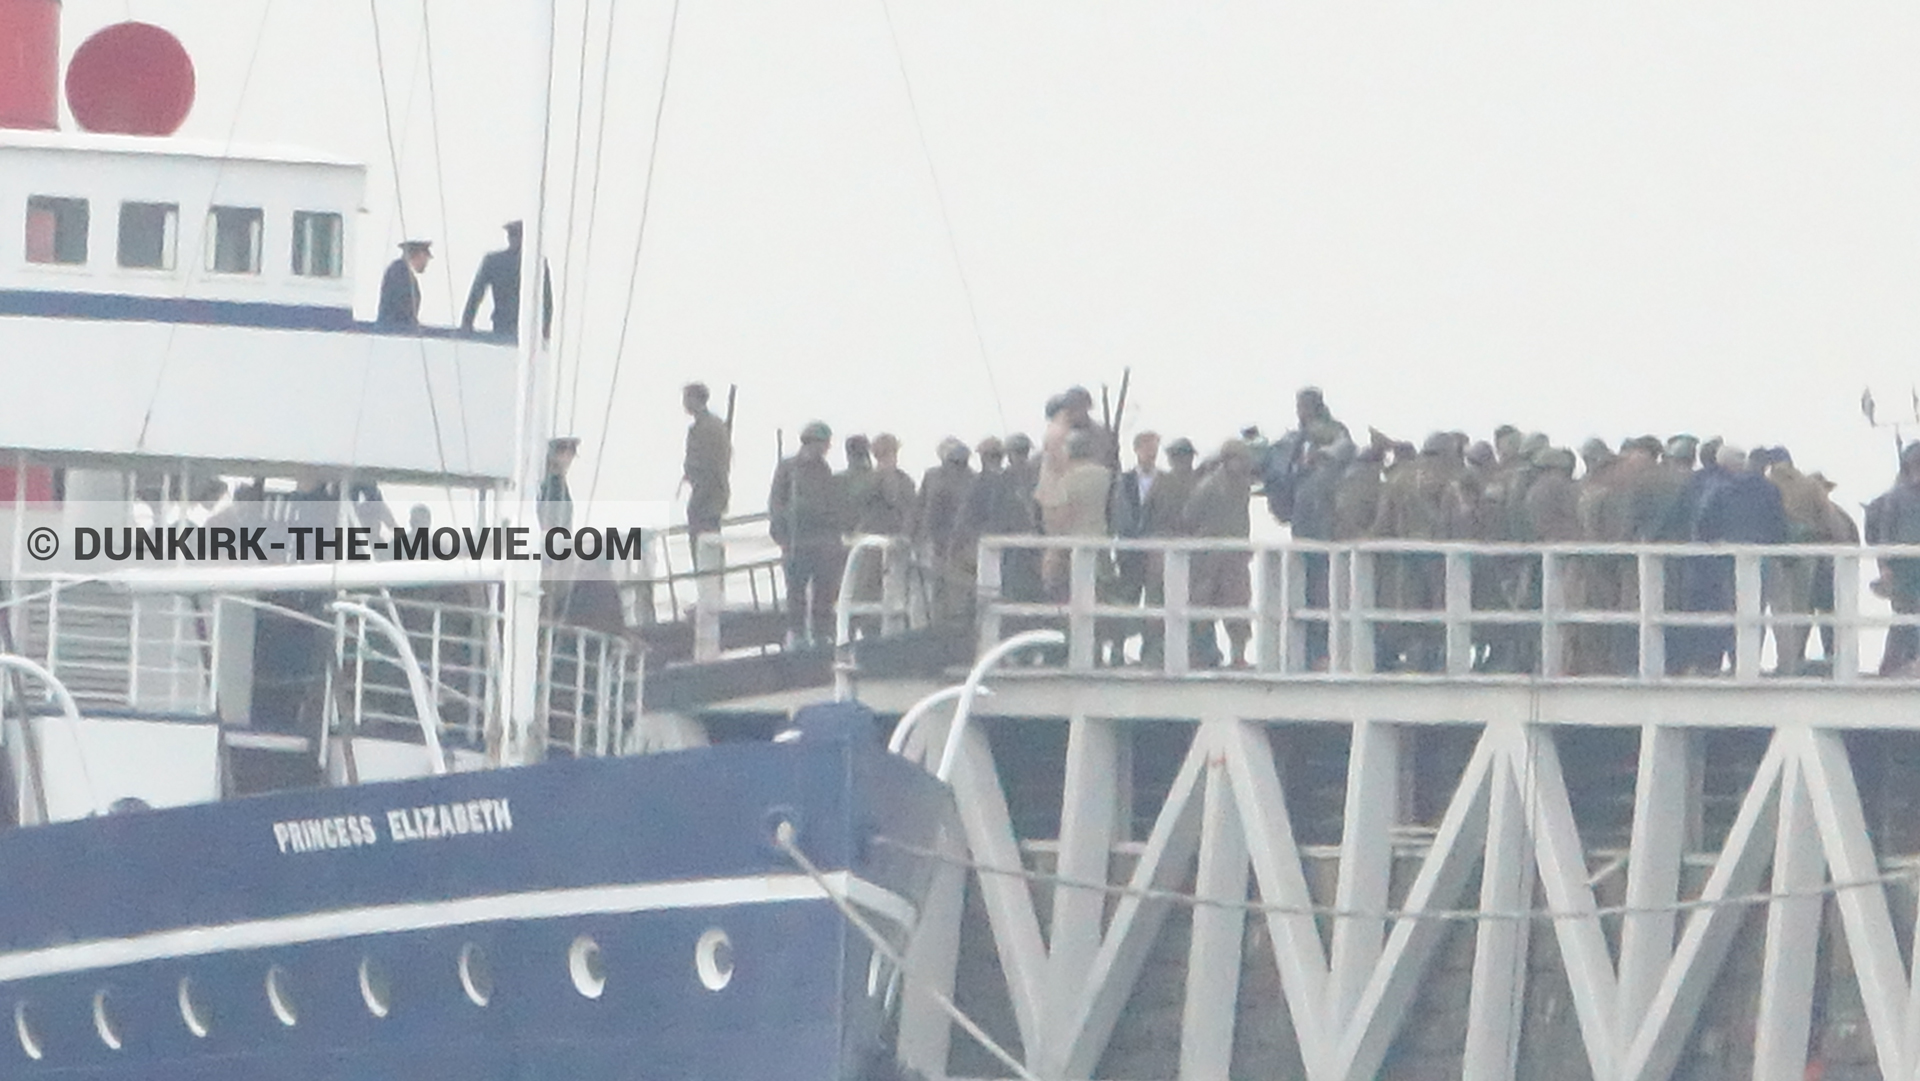 Picture with grey sky, supernumeraries, EST pier, Princess Elizabeth,  from behind the scene of the Dunkirk movie by Nolan